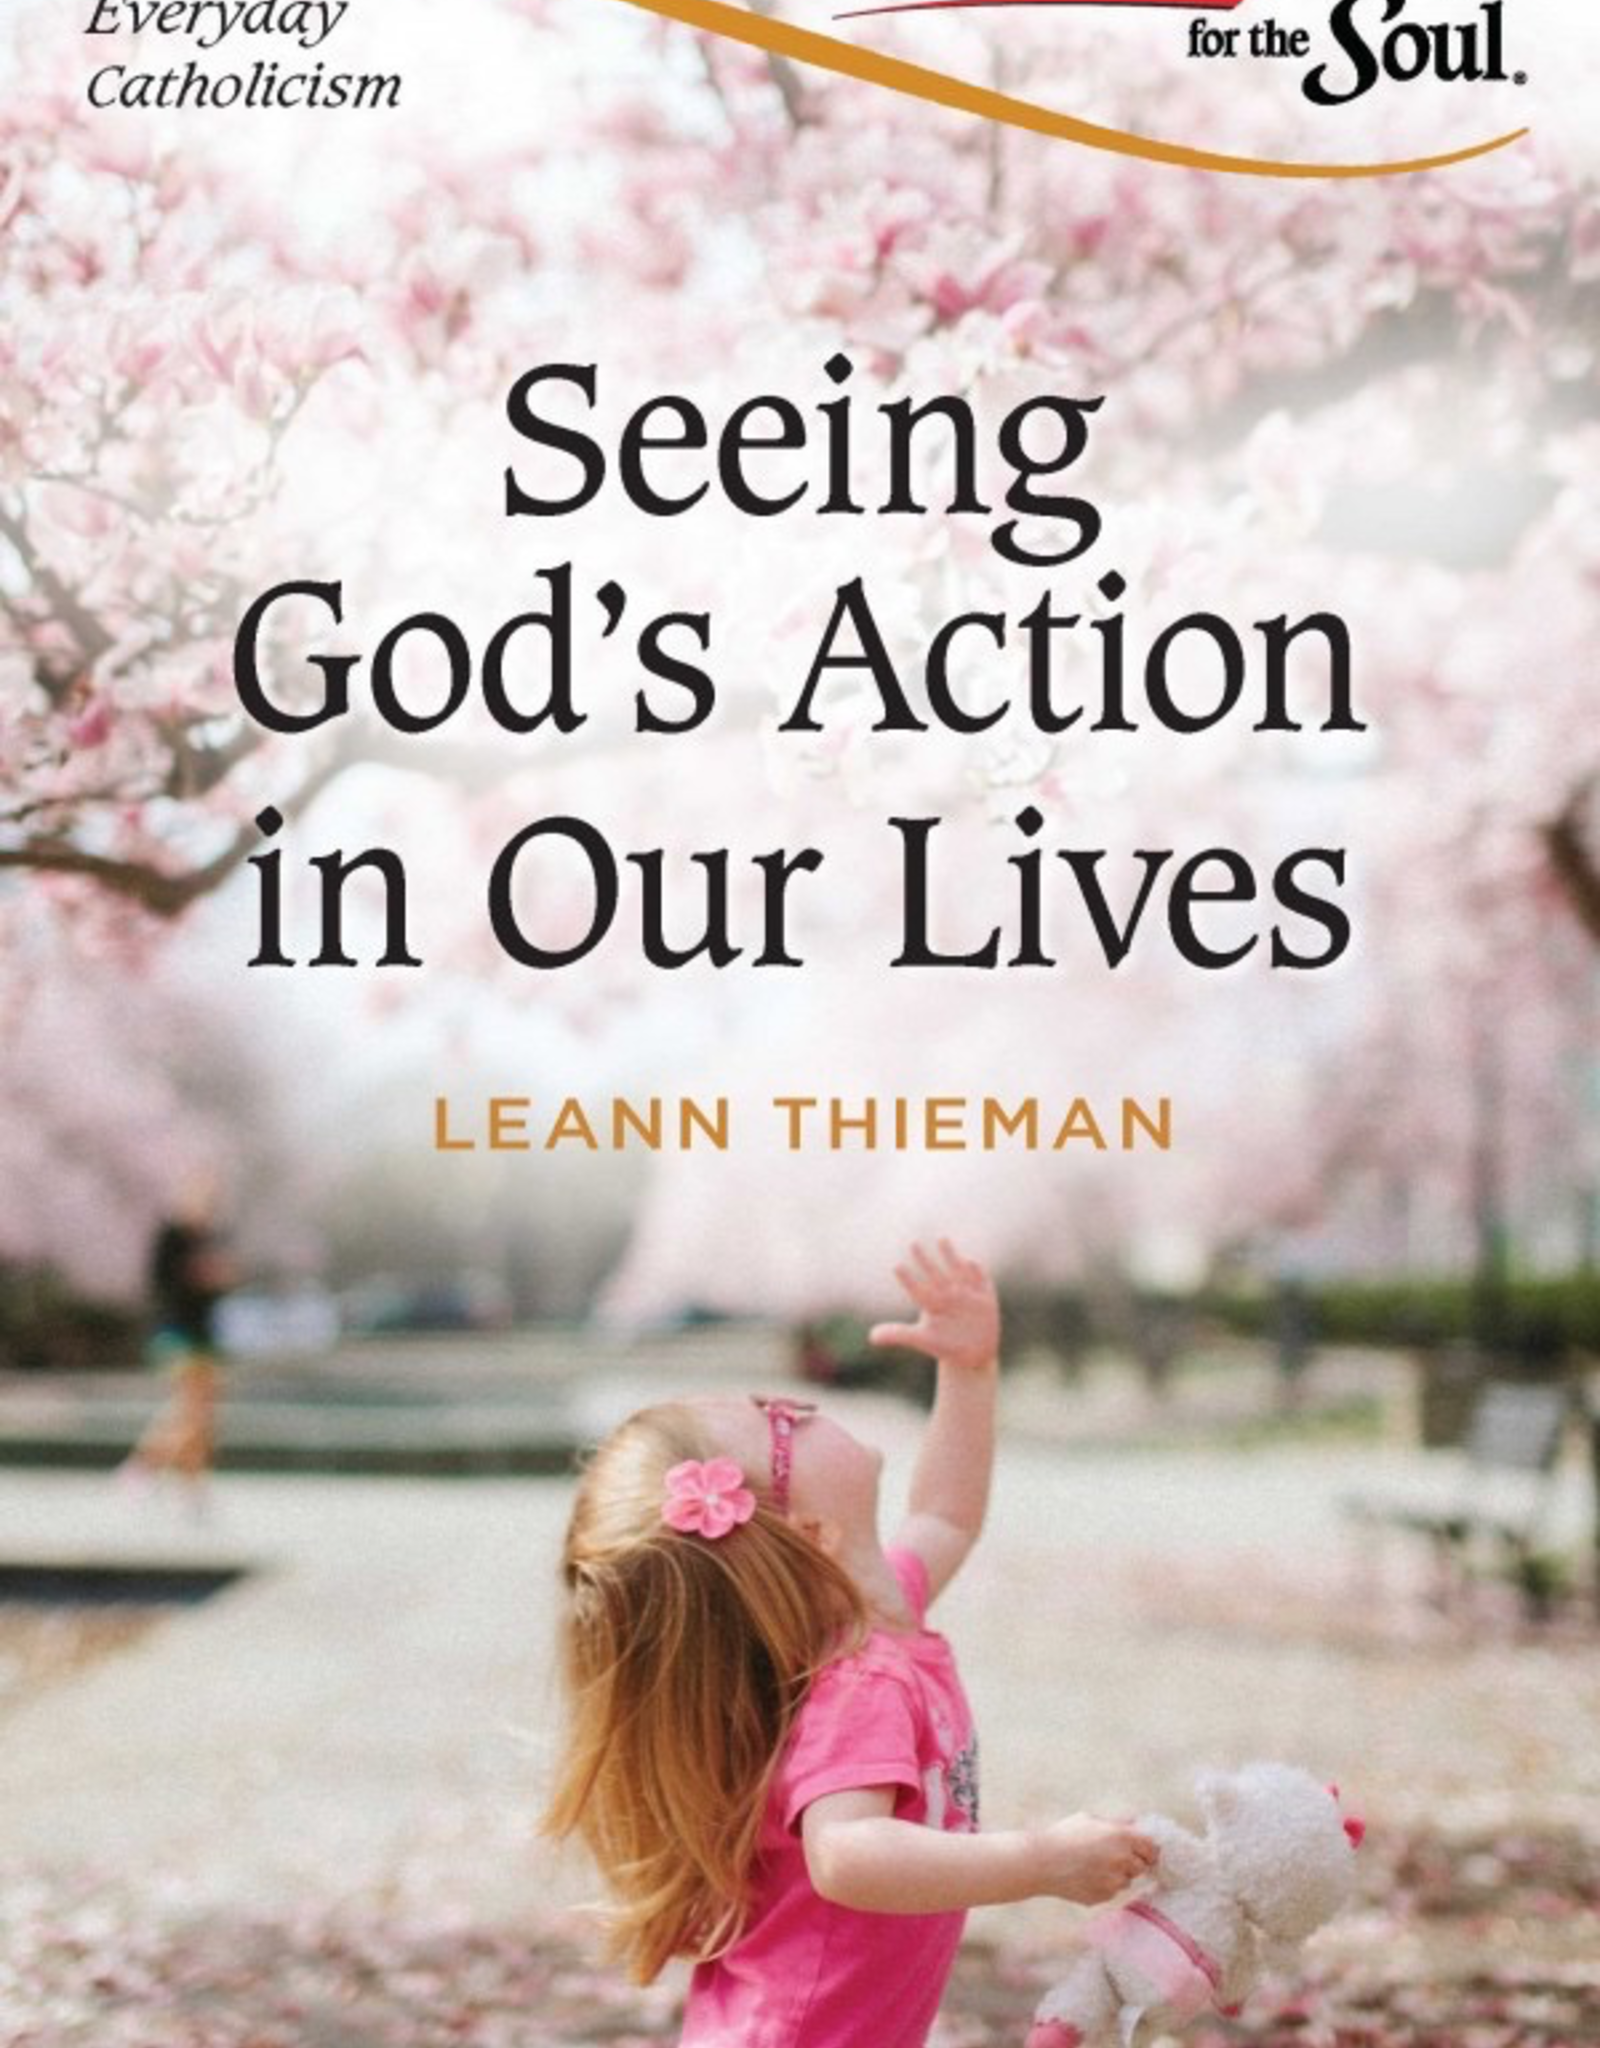 Sophia Institute Every Day Catholicism:  Seeing God‰Ûªs Action in Our Lives, by LeAnn Thieman (paperback)